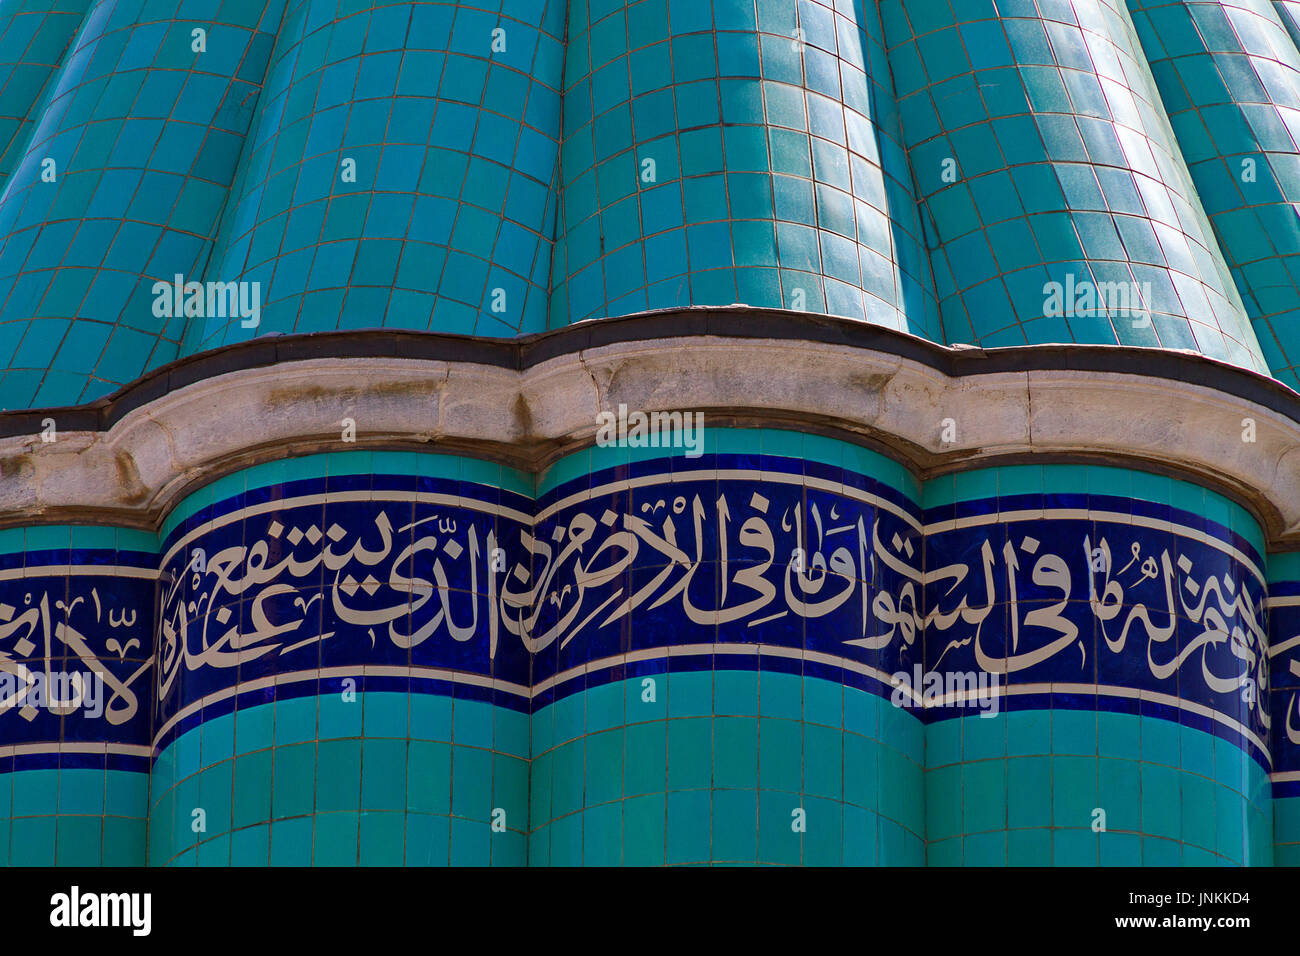 Details of the dome of the Mausoleum of Mevlana Rumi in Konya, Turkey. - Stock Image